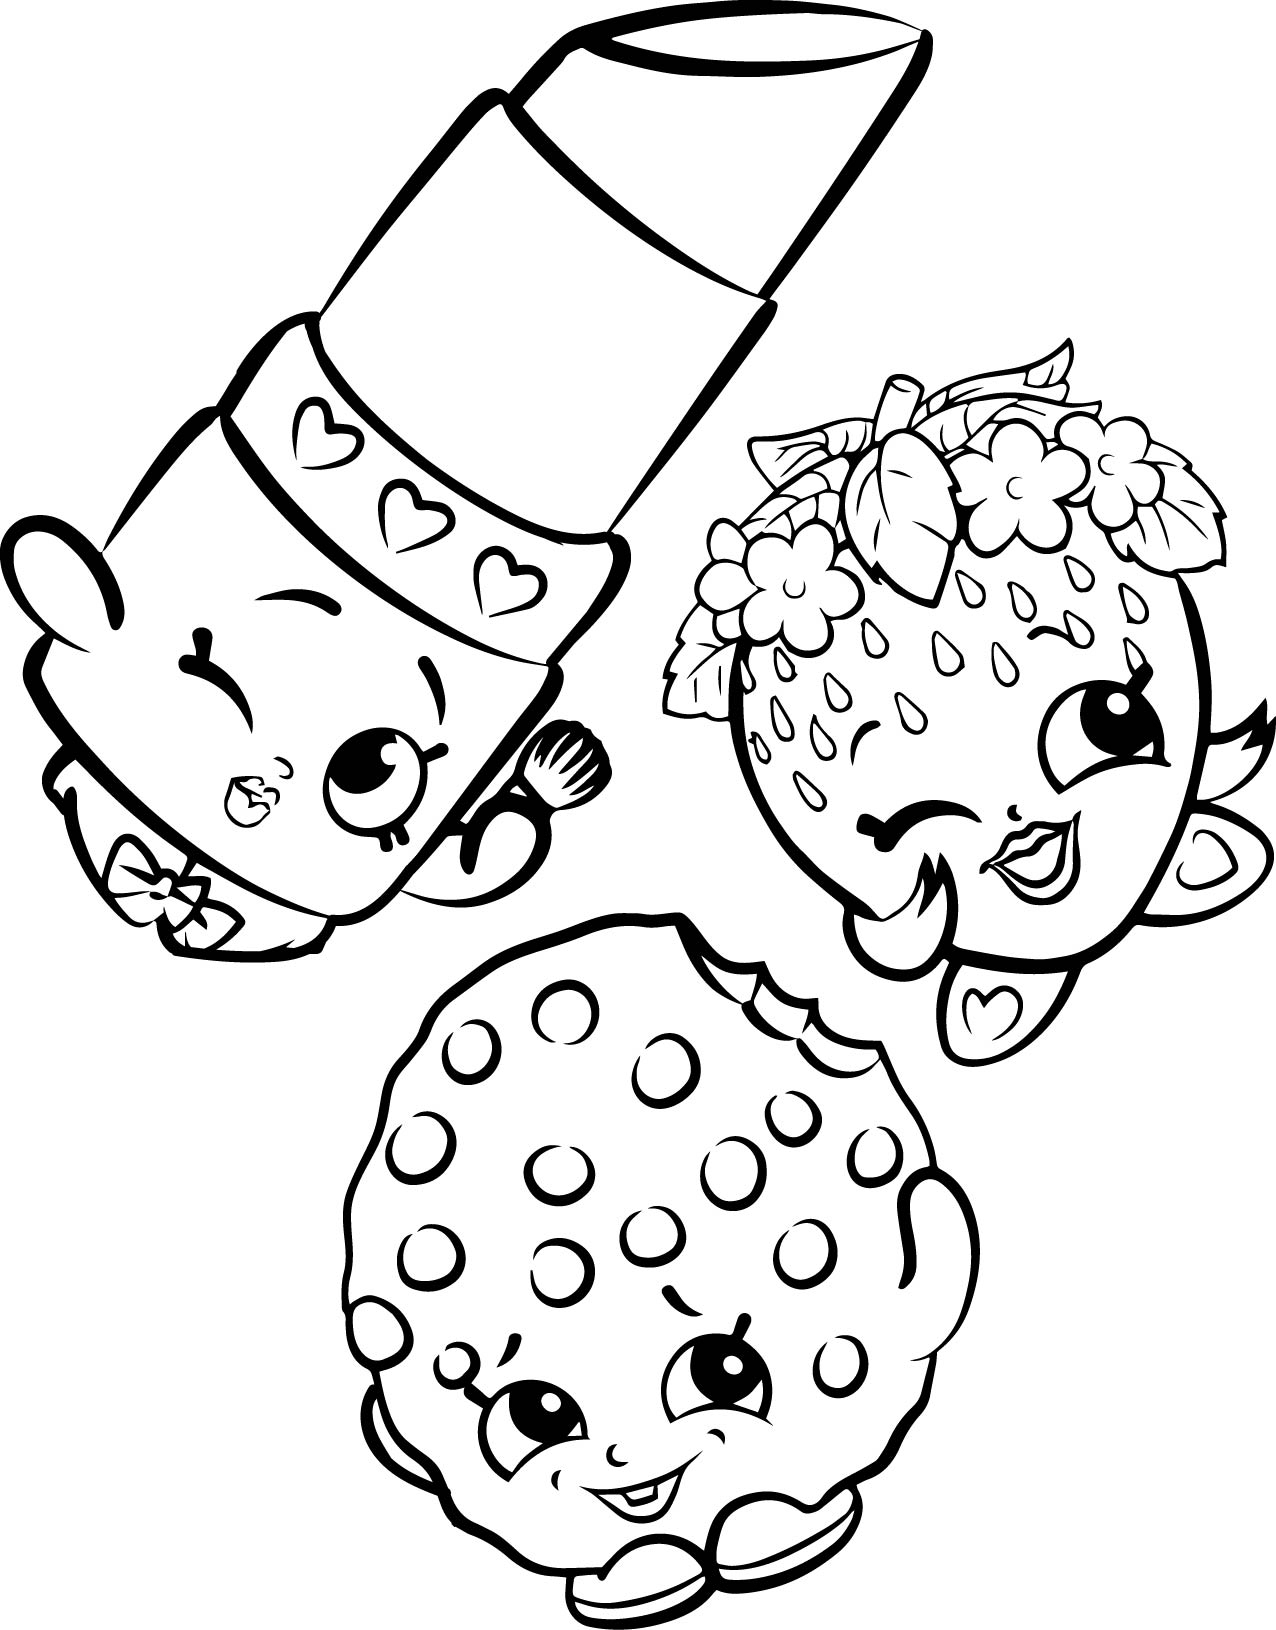 link coloring pages - shopkins house coloring page 8 2